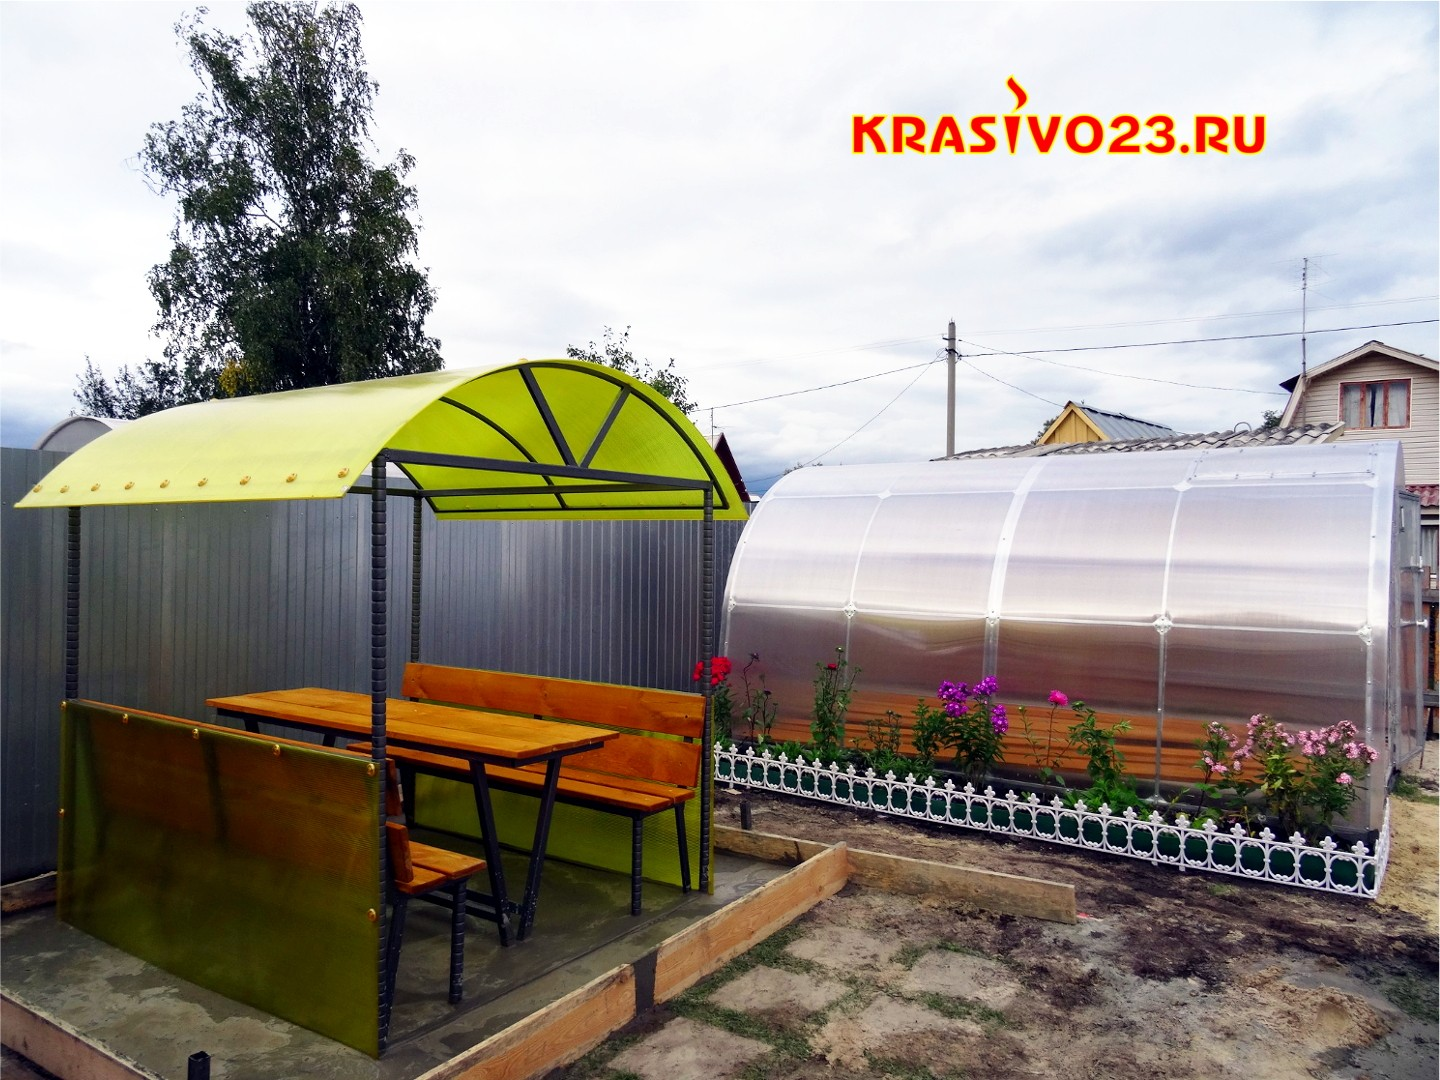 greenhouse-hothouse-glasshouse-installation-krasnodar-krasivo23.ru-001